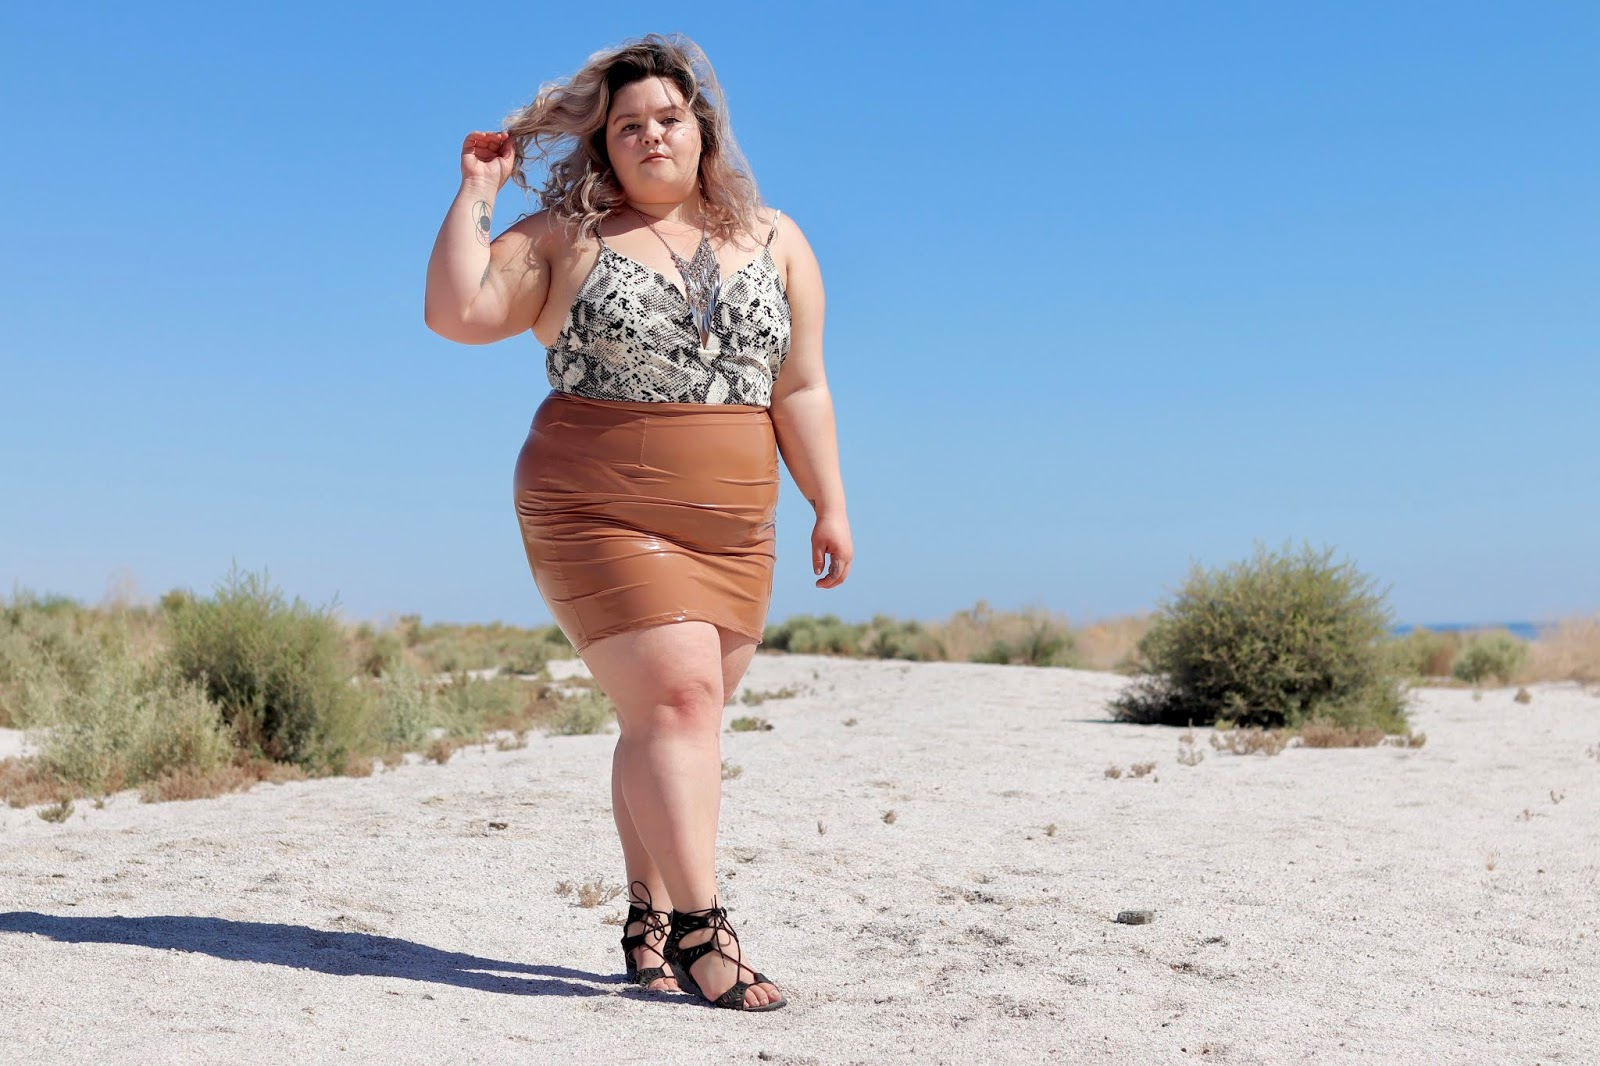 Chicago Plus Size Petite Fashion Blogger, YouTuber, and model Natalie Craig, of Natalie in the City, reviews Fashion Nova Curve's Slither My Way Bodysuit and Boot Camp Latex Skirt.